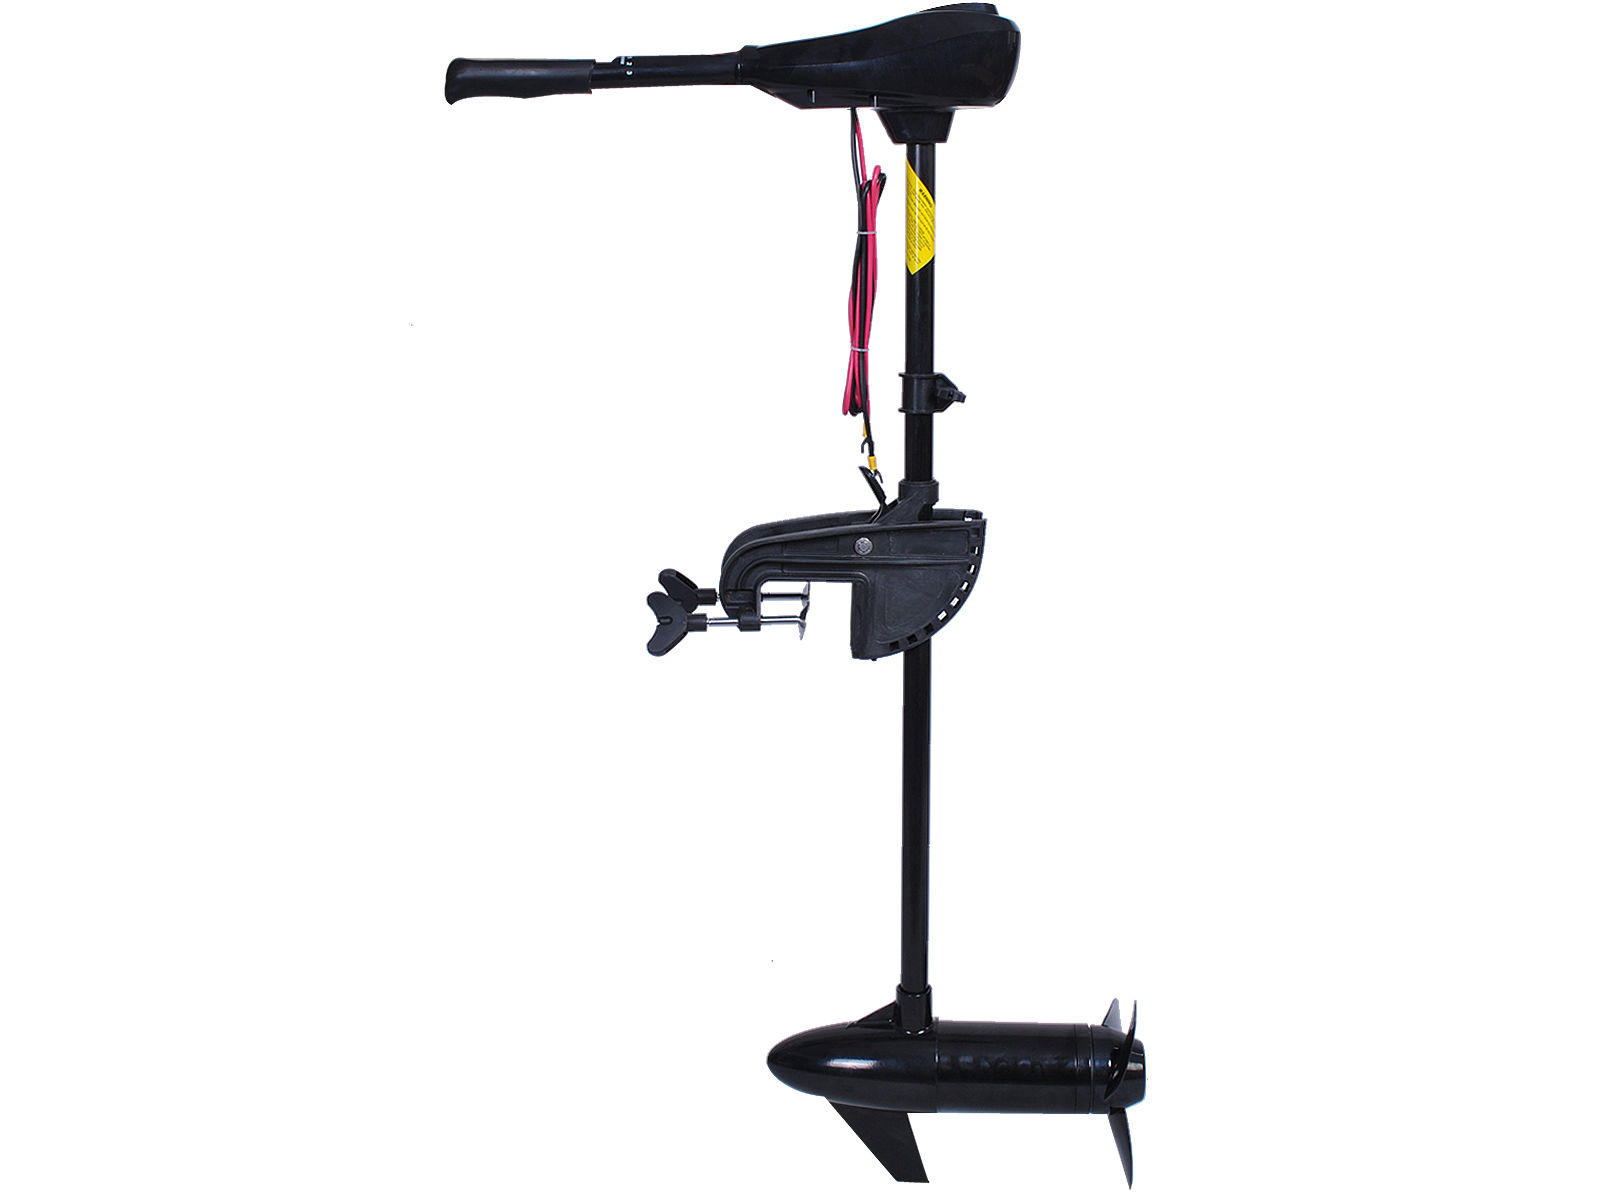 "Costway New 86lbs Freshwater Transom Mounted Trolling Motor 36"" Shaft by Costway"